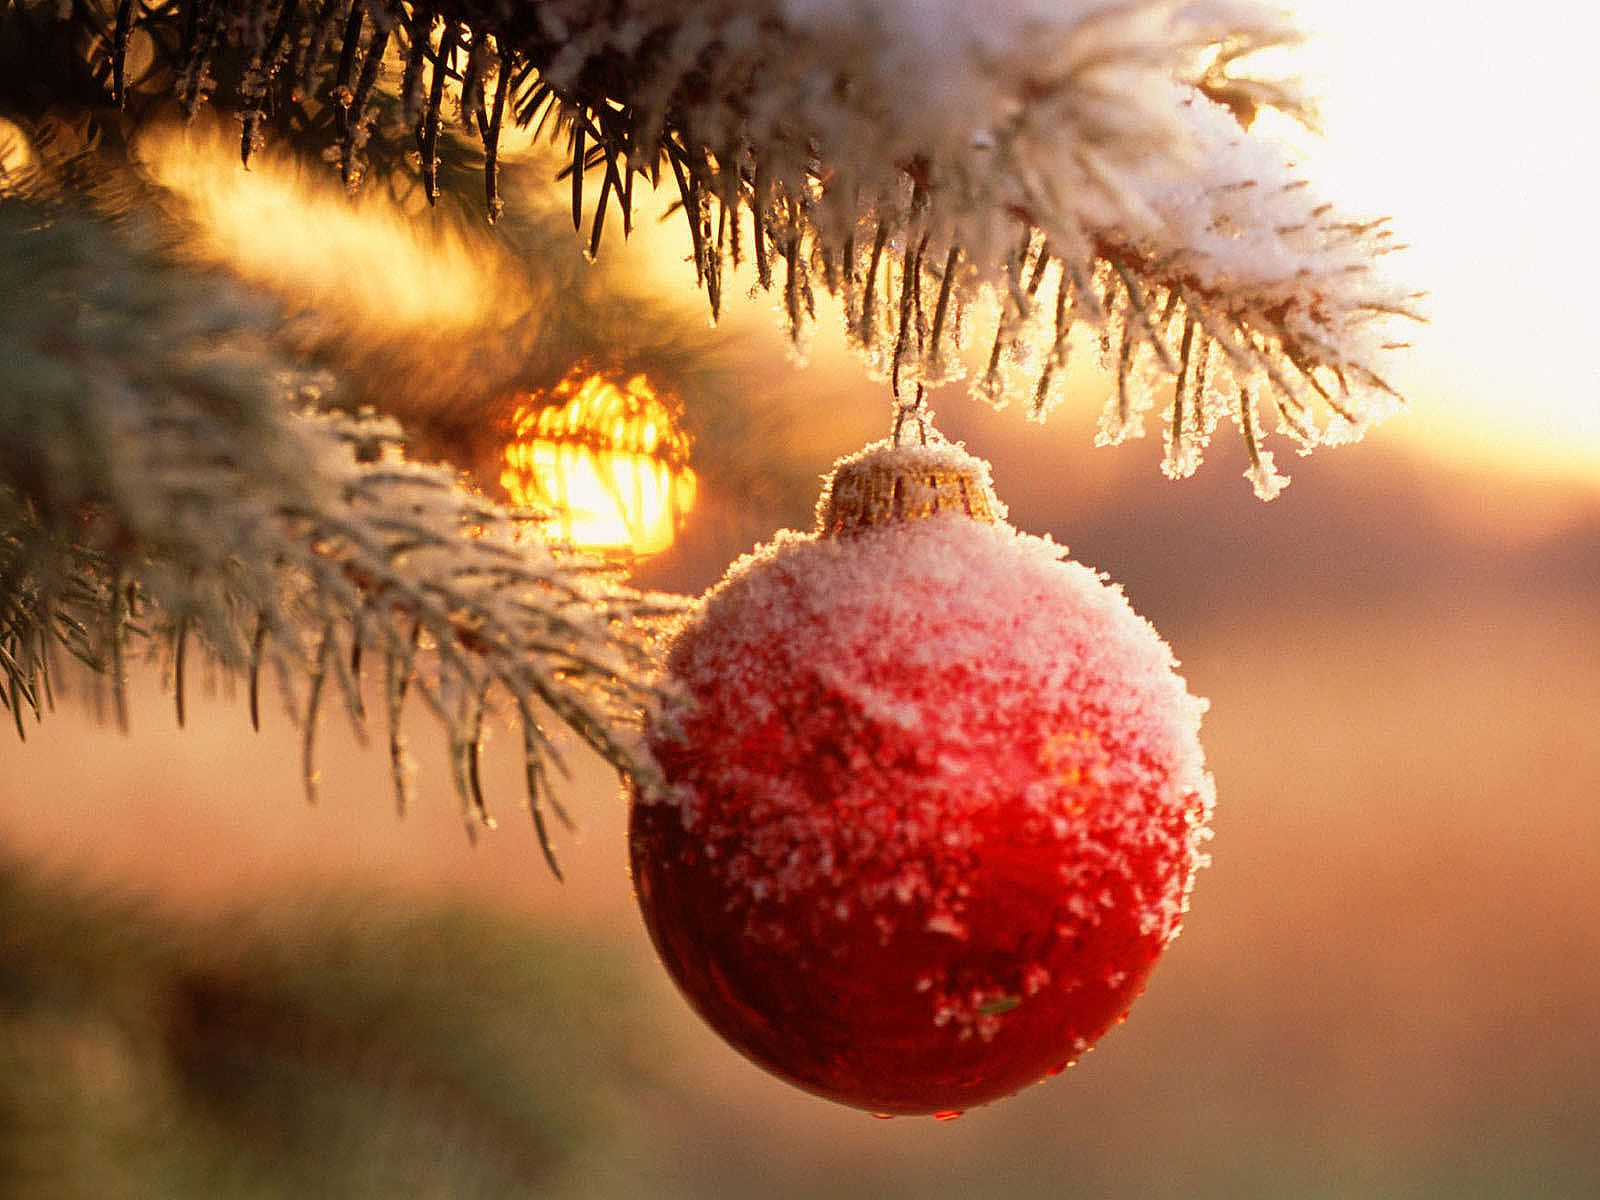 Christmas Ornaments Wallpaper Christmas Pinterest HD Wallpapers Download Free Images Wallpaper [1000image.com]